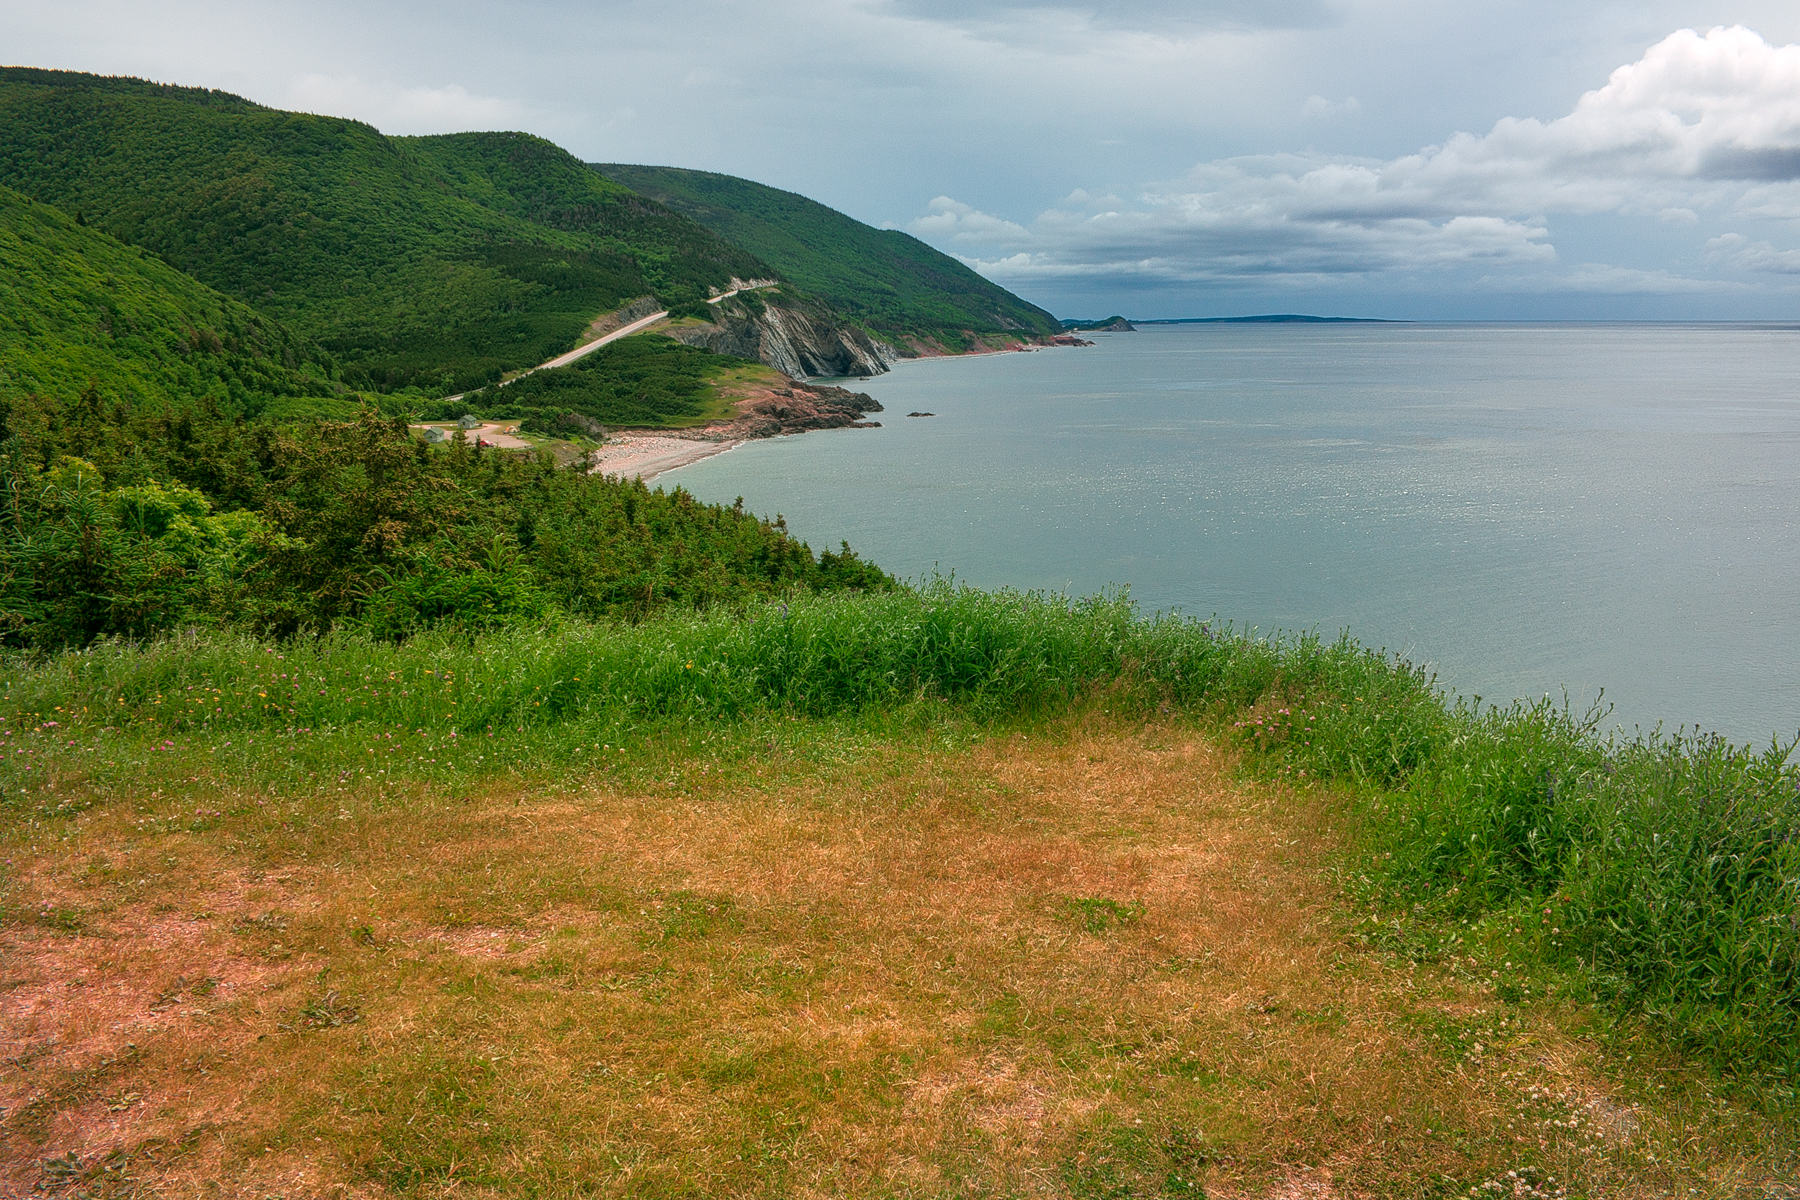 Cabot Trail Scenery - HDR, Angle, Photograph, Resource, Res, HQ Photo